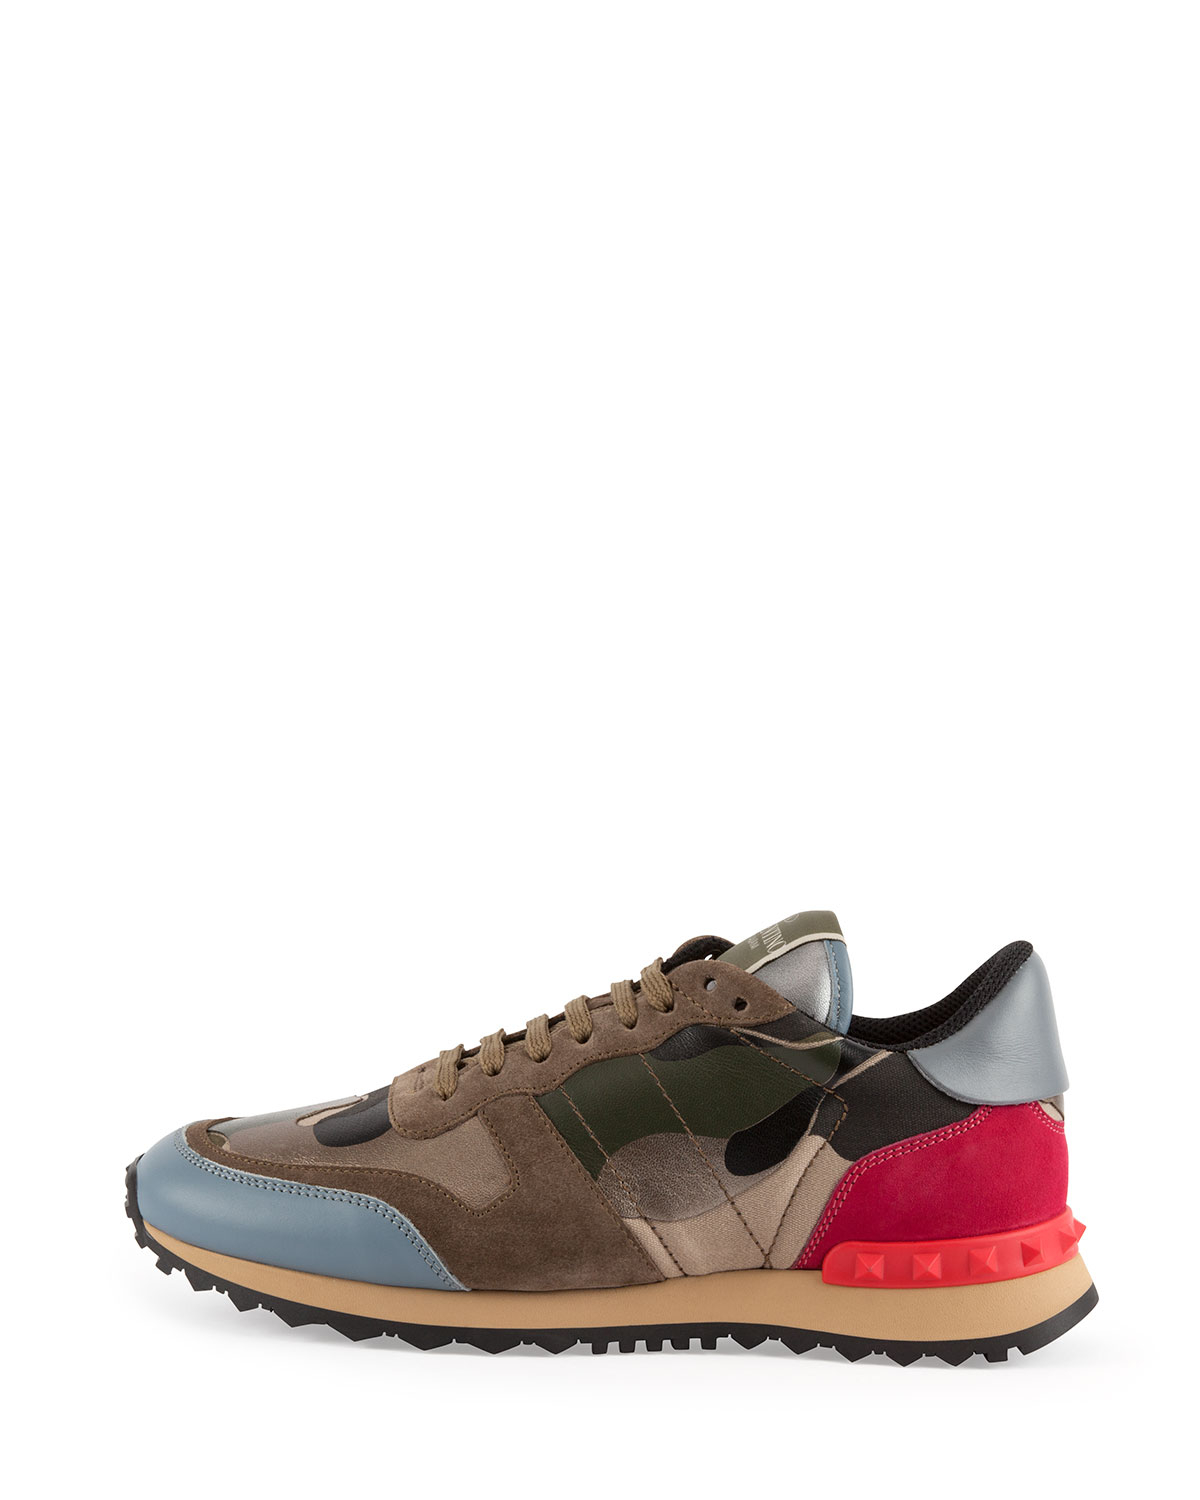 valentino rockstud metallic camo print sneaker in multicolor camo lyst. Black Bedroom Furniture Sets. Home Design Ideas